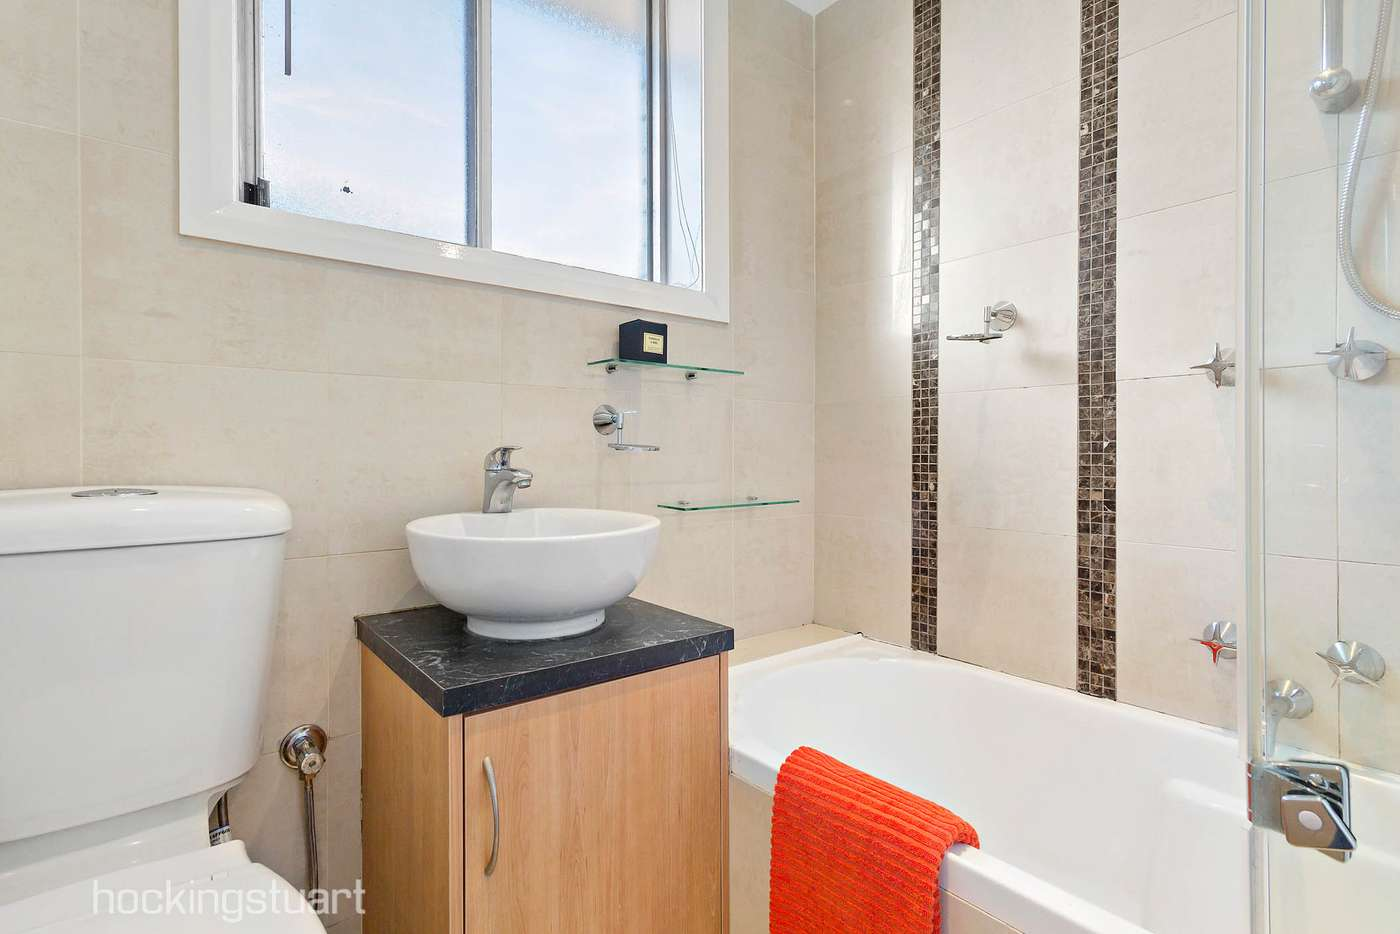 Sixth view of Homely apartment listing, 6/66 De Carle Street, Brunswick VIC 3056